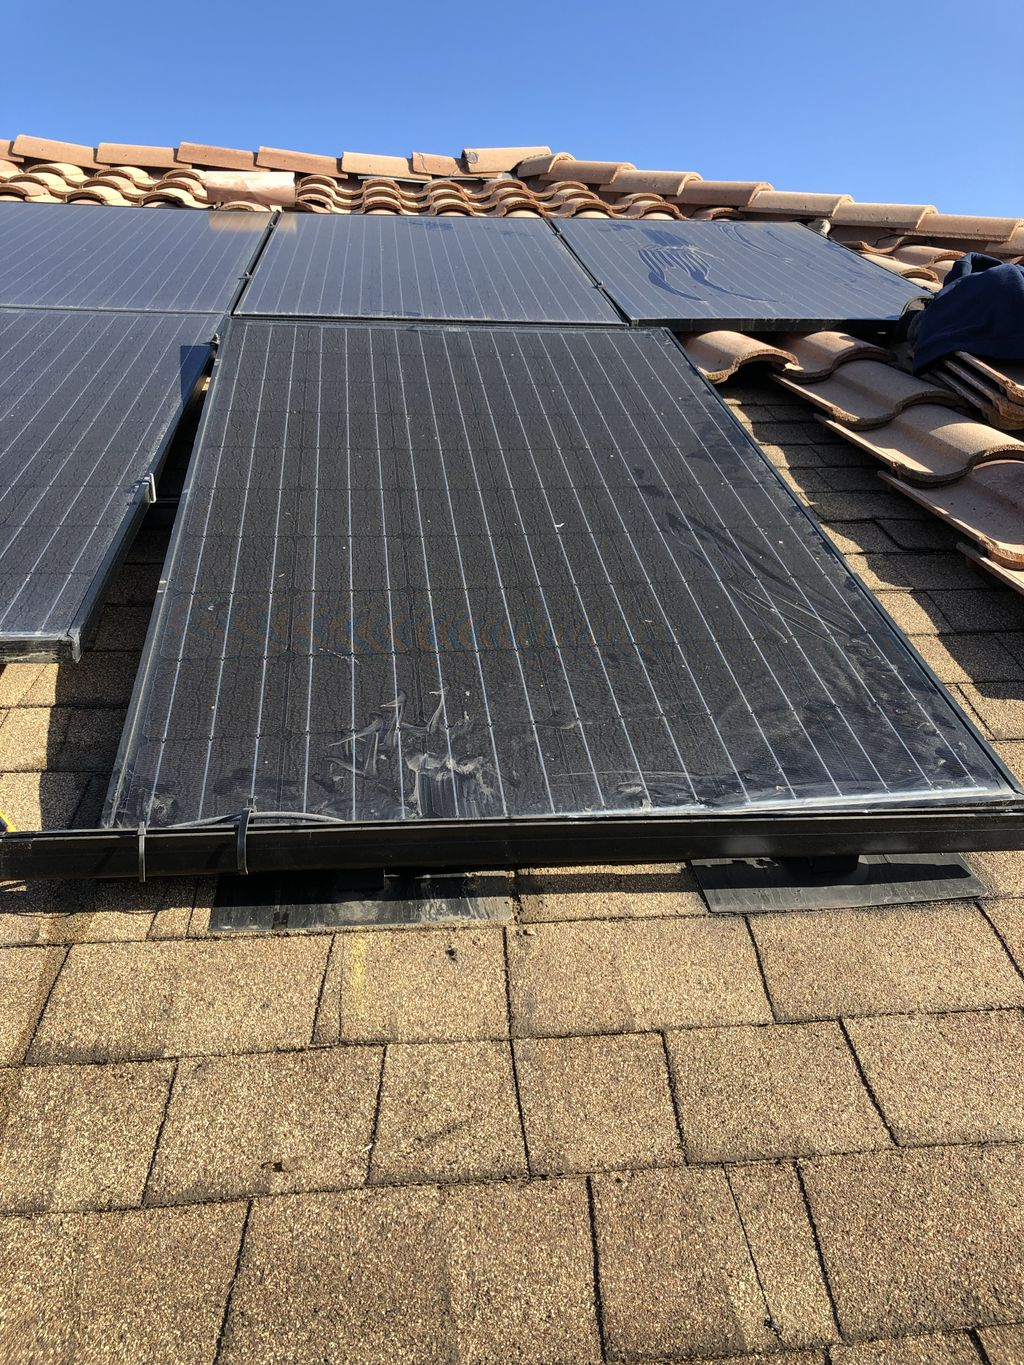 Repairing improperly installed roof under solar